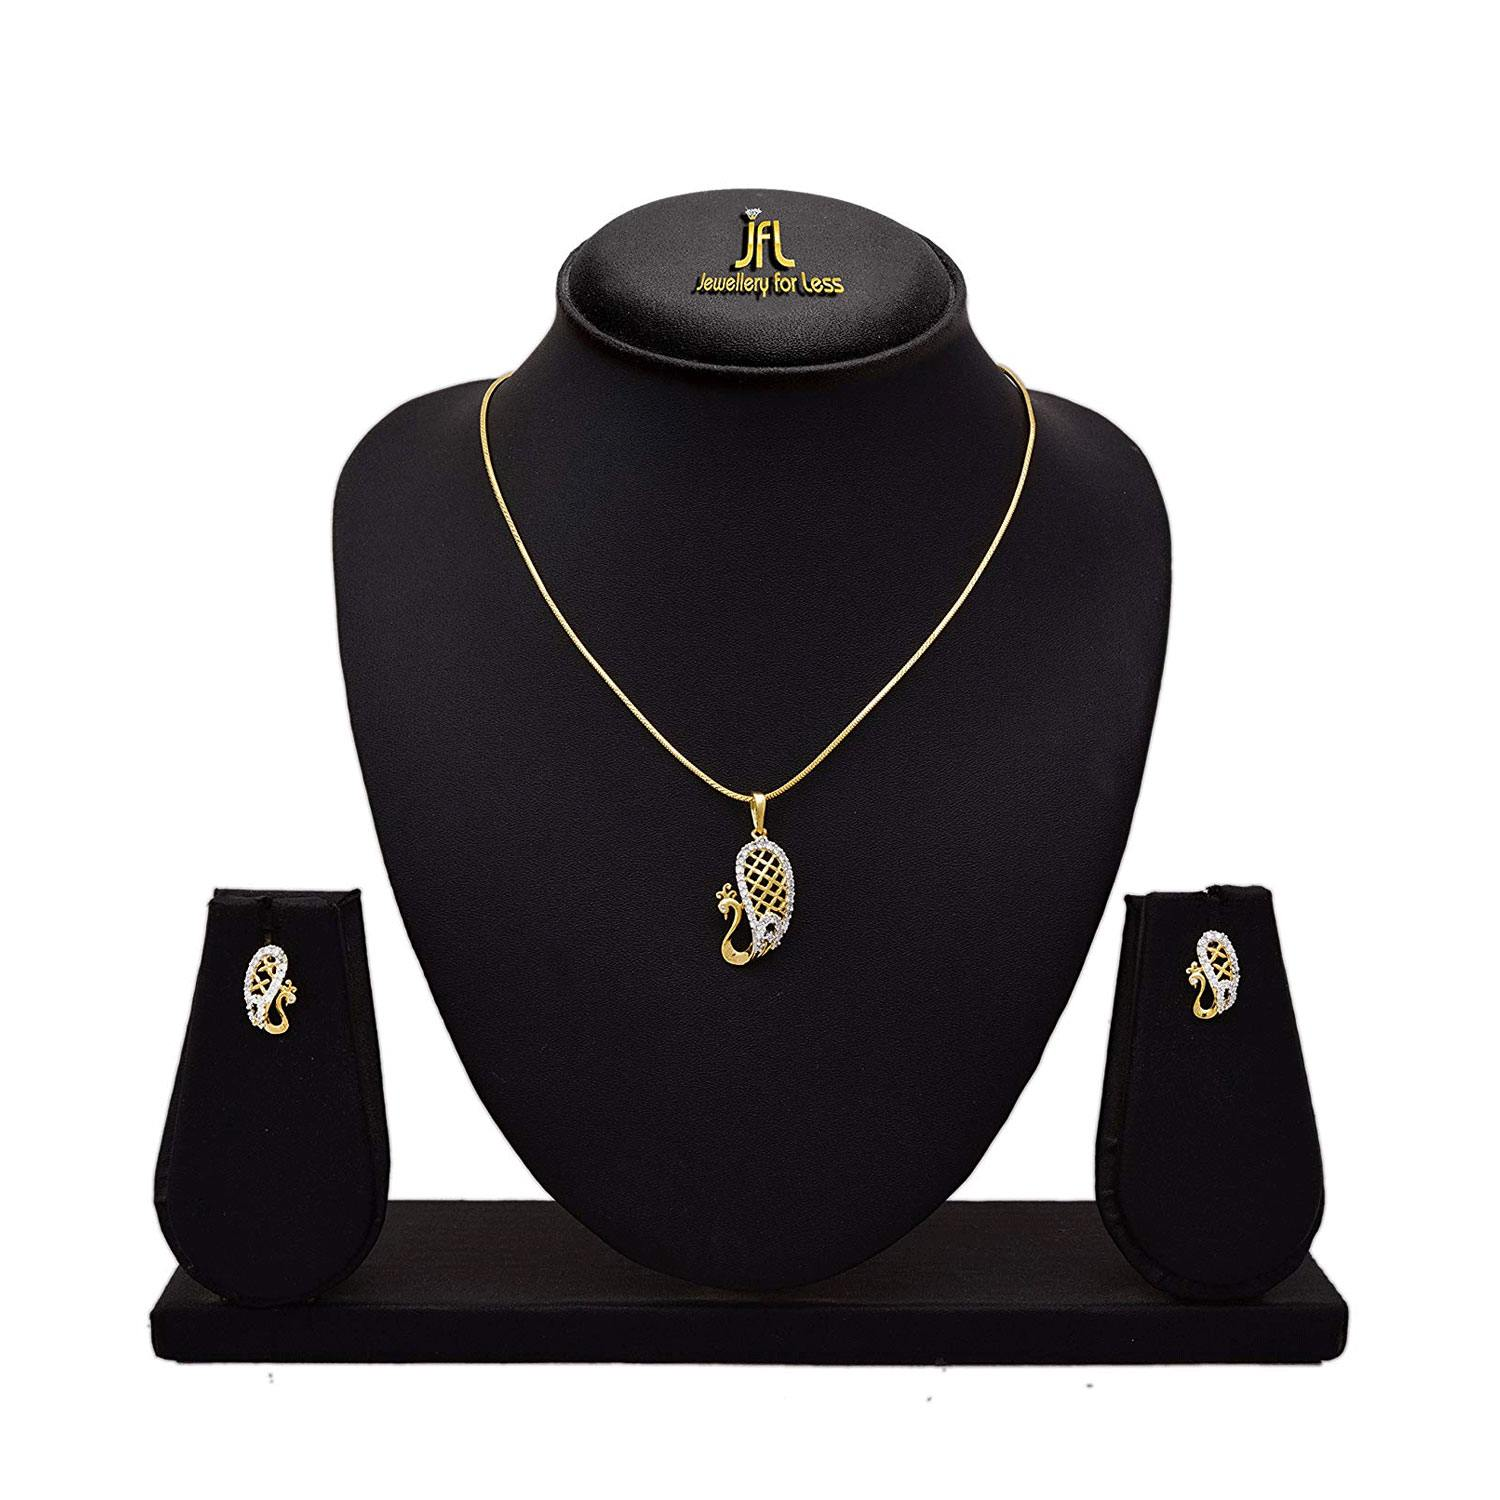 JFL- Fusion Ethnic Cz Cubic Zircon American Diamond One Gram Gold Plated Designer Pendant Set with Chain for Girls and Women